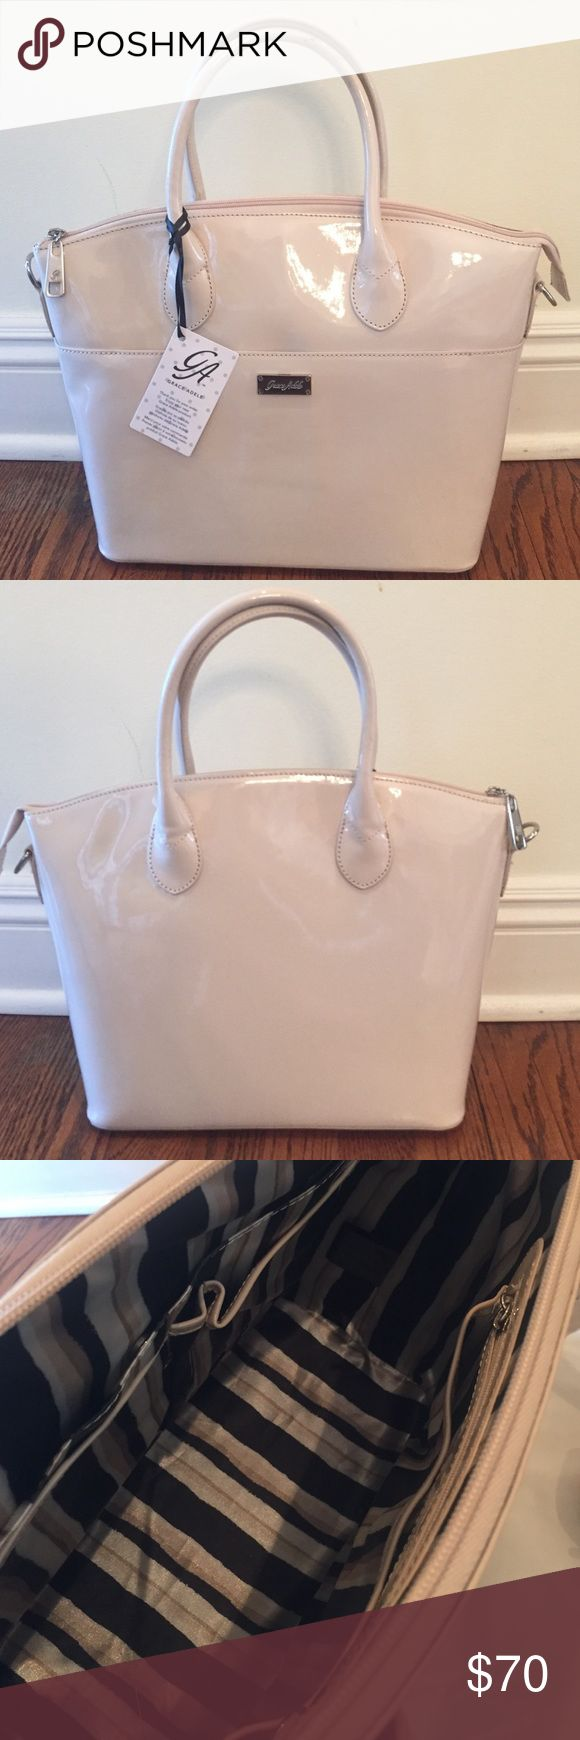 NEW Grace Adele Roxie Bag NWT Grace Adele Roxie Bag.  Includes Bag with dust bag and Shoulder strap. Grace Adele Bags Satchels